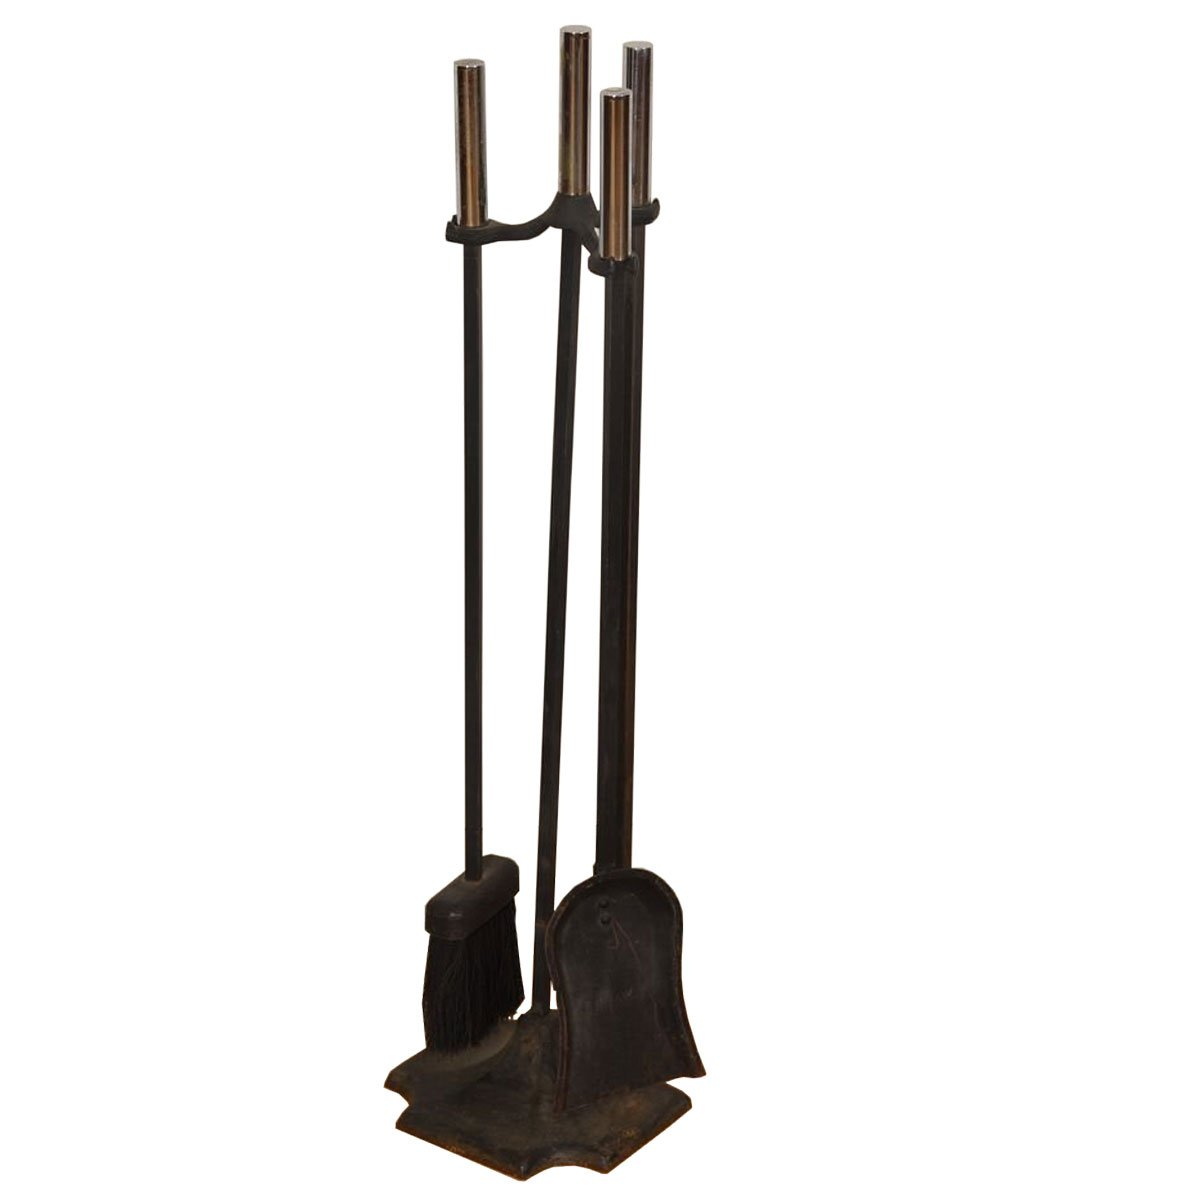 Set of Iron Mid-century Modern Fireplace Tools with Chrome Handles